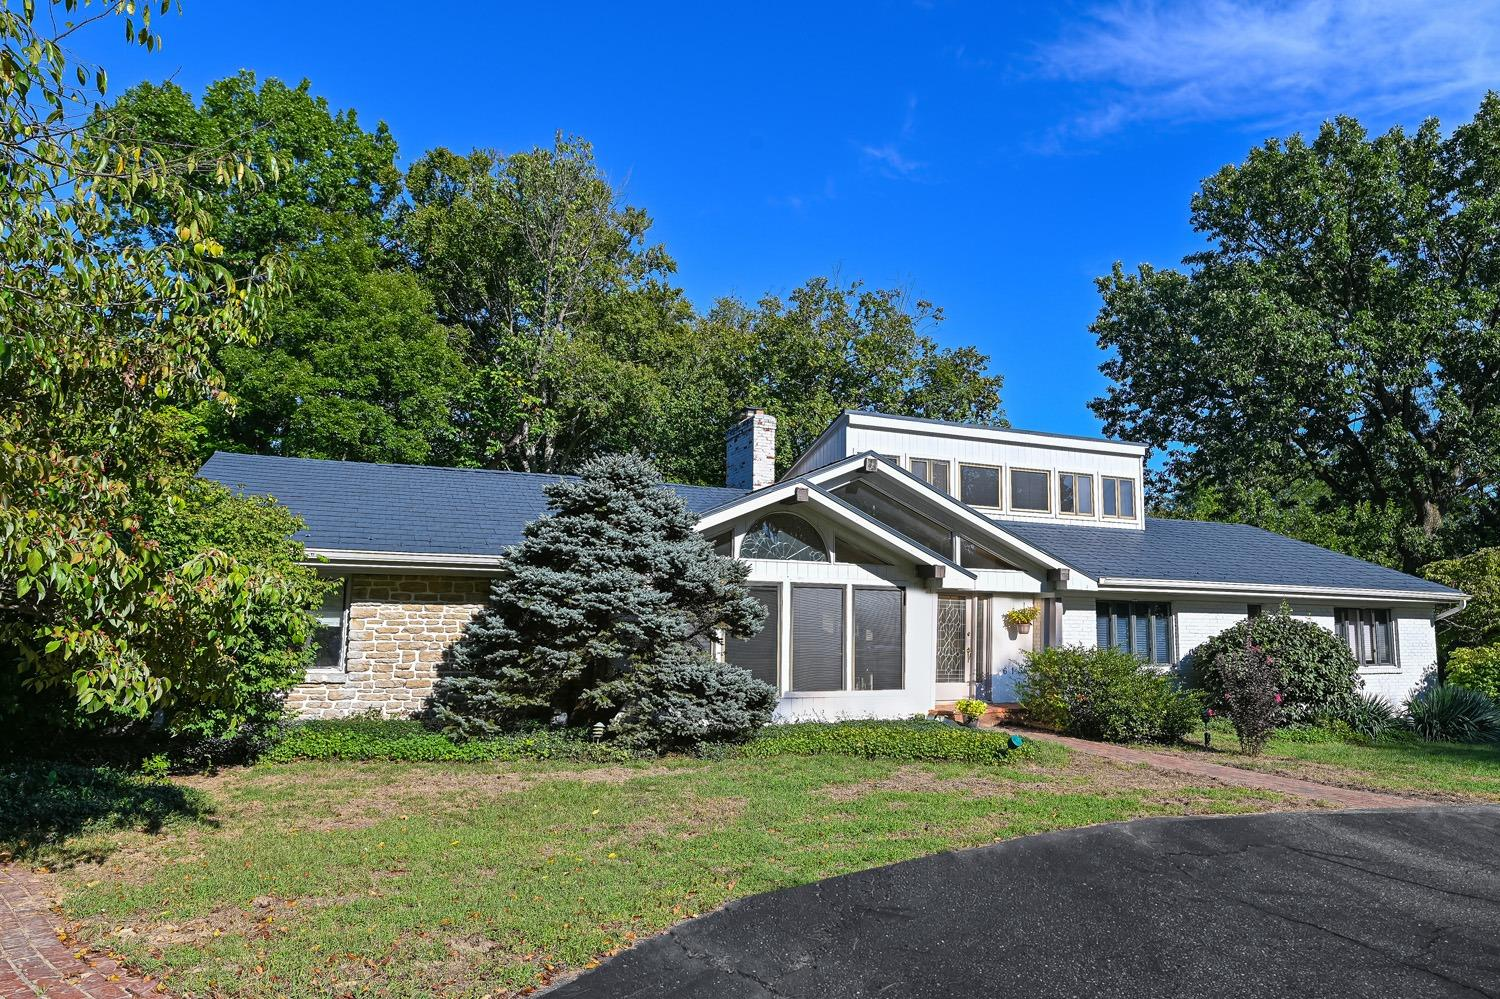 615 Hickory Hill Lane, Wyoming, Ohio 45215, 5 Bedrooms Bedrooms, 9 Rooms Rooms,3 BathroomsBathrooms,Single Family Residence,For Sale,Hickory Hill,1717065